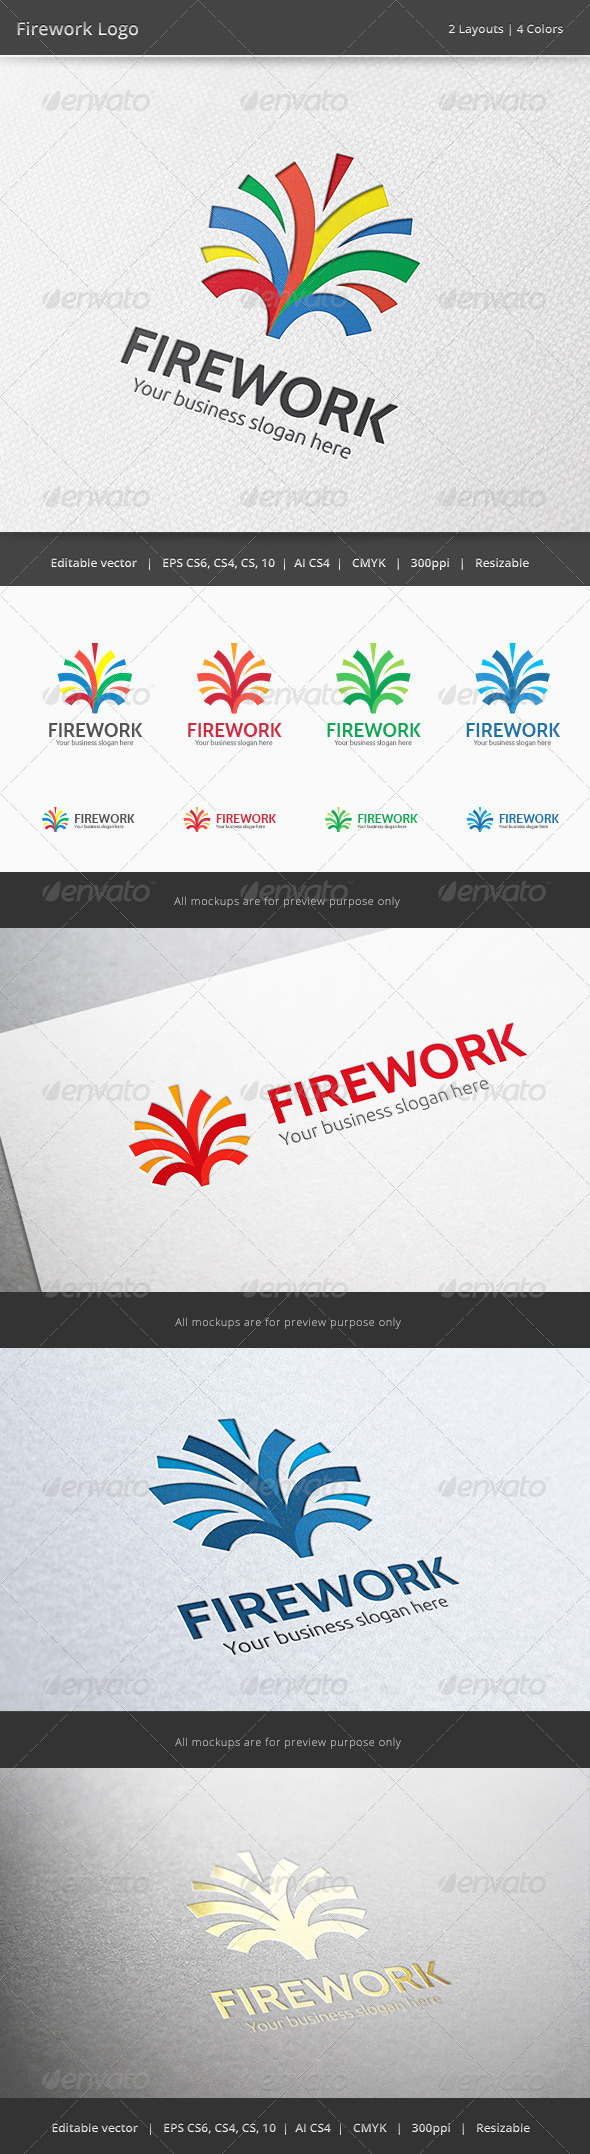 Firework Media Logo - Abstract Logo Templates